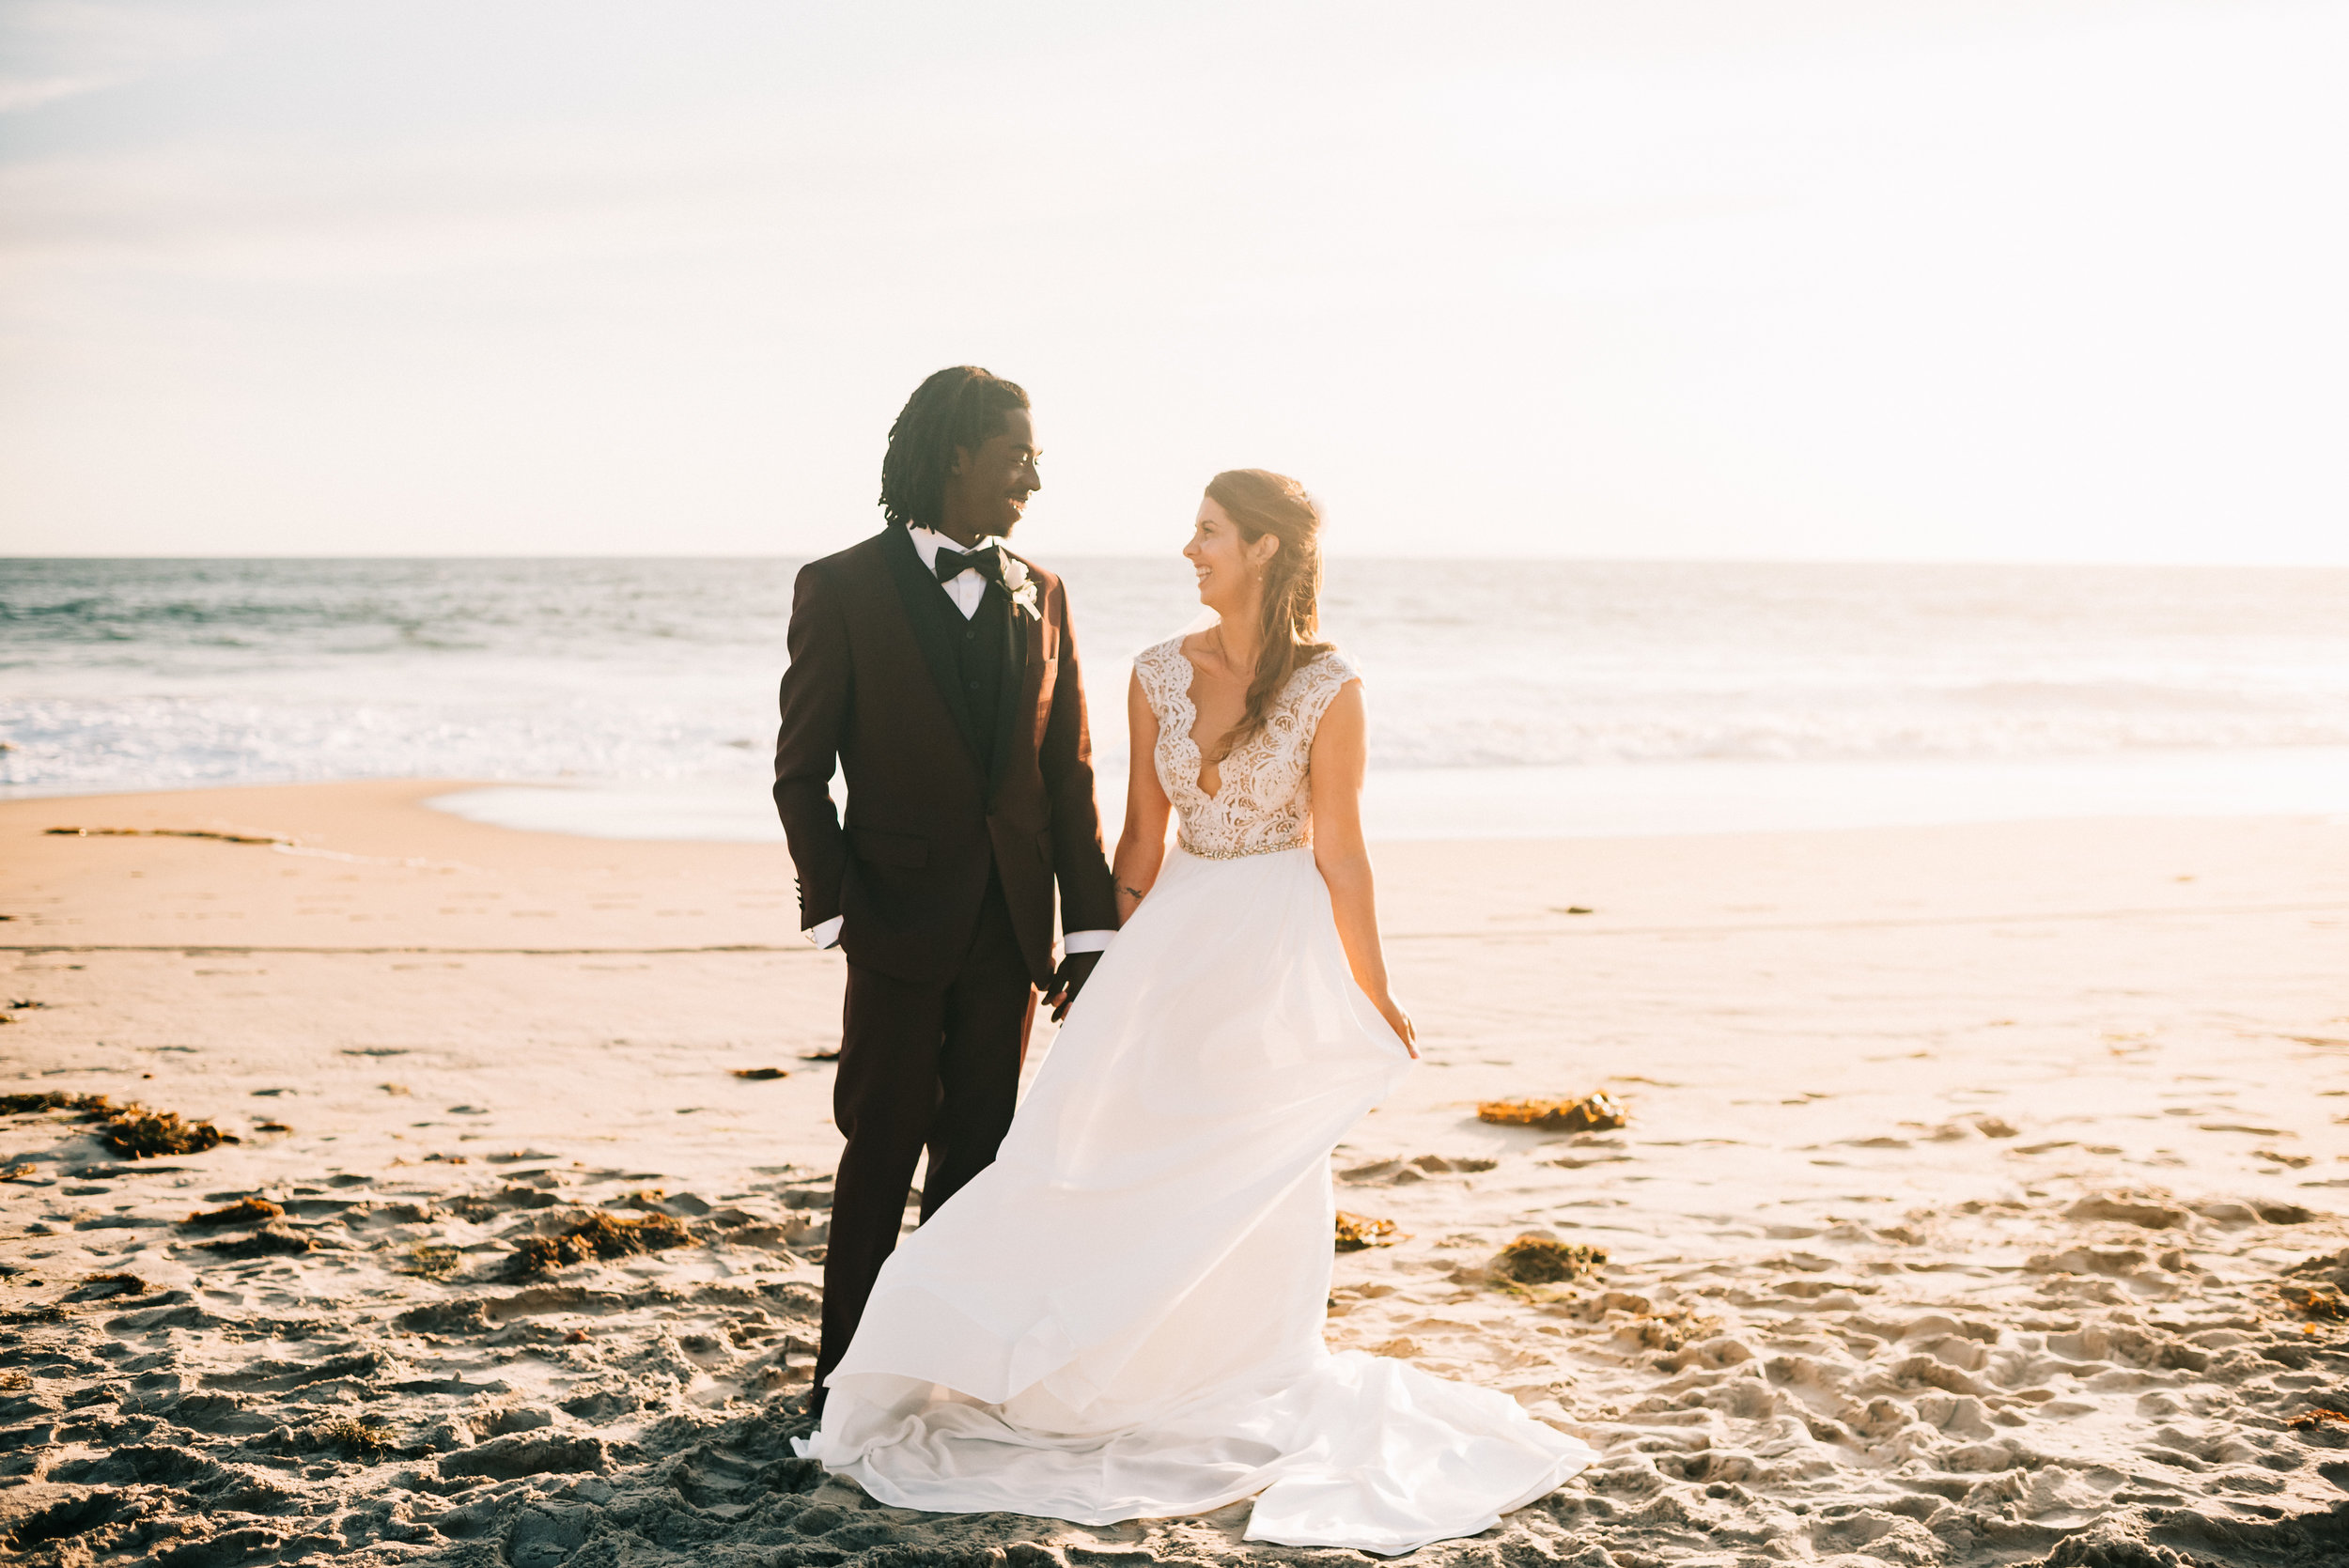 southern california laguna beach salt creek beach los angeles socal boho bay area akland san francisco engagement wedding nontraditional fun creative eclectic photographer magic-884.jpg